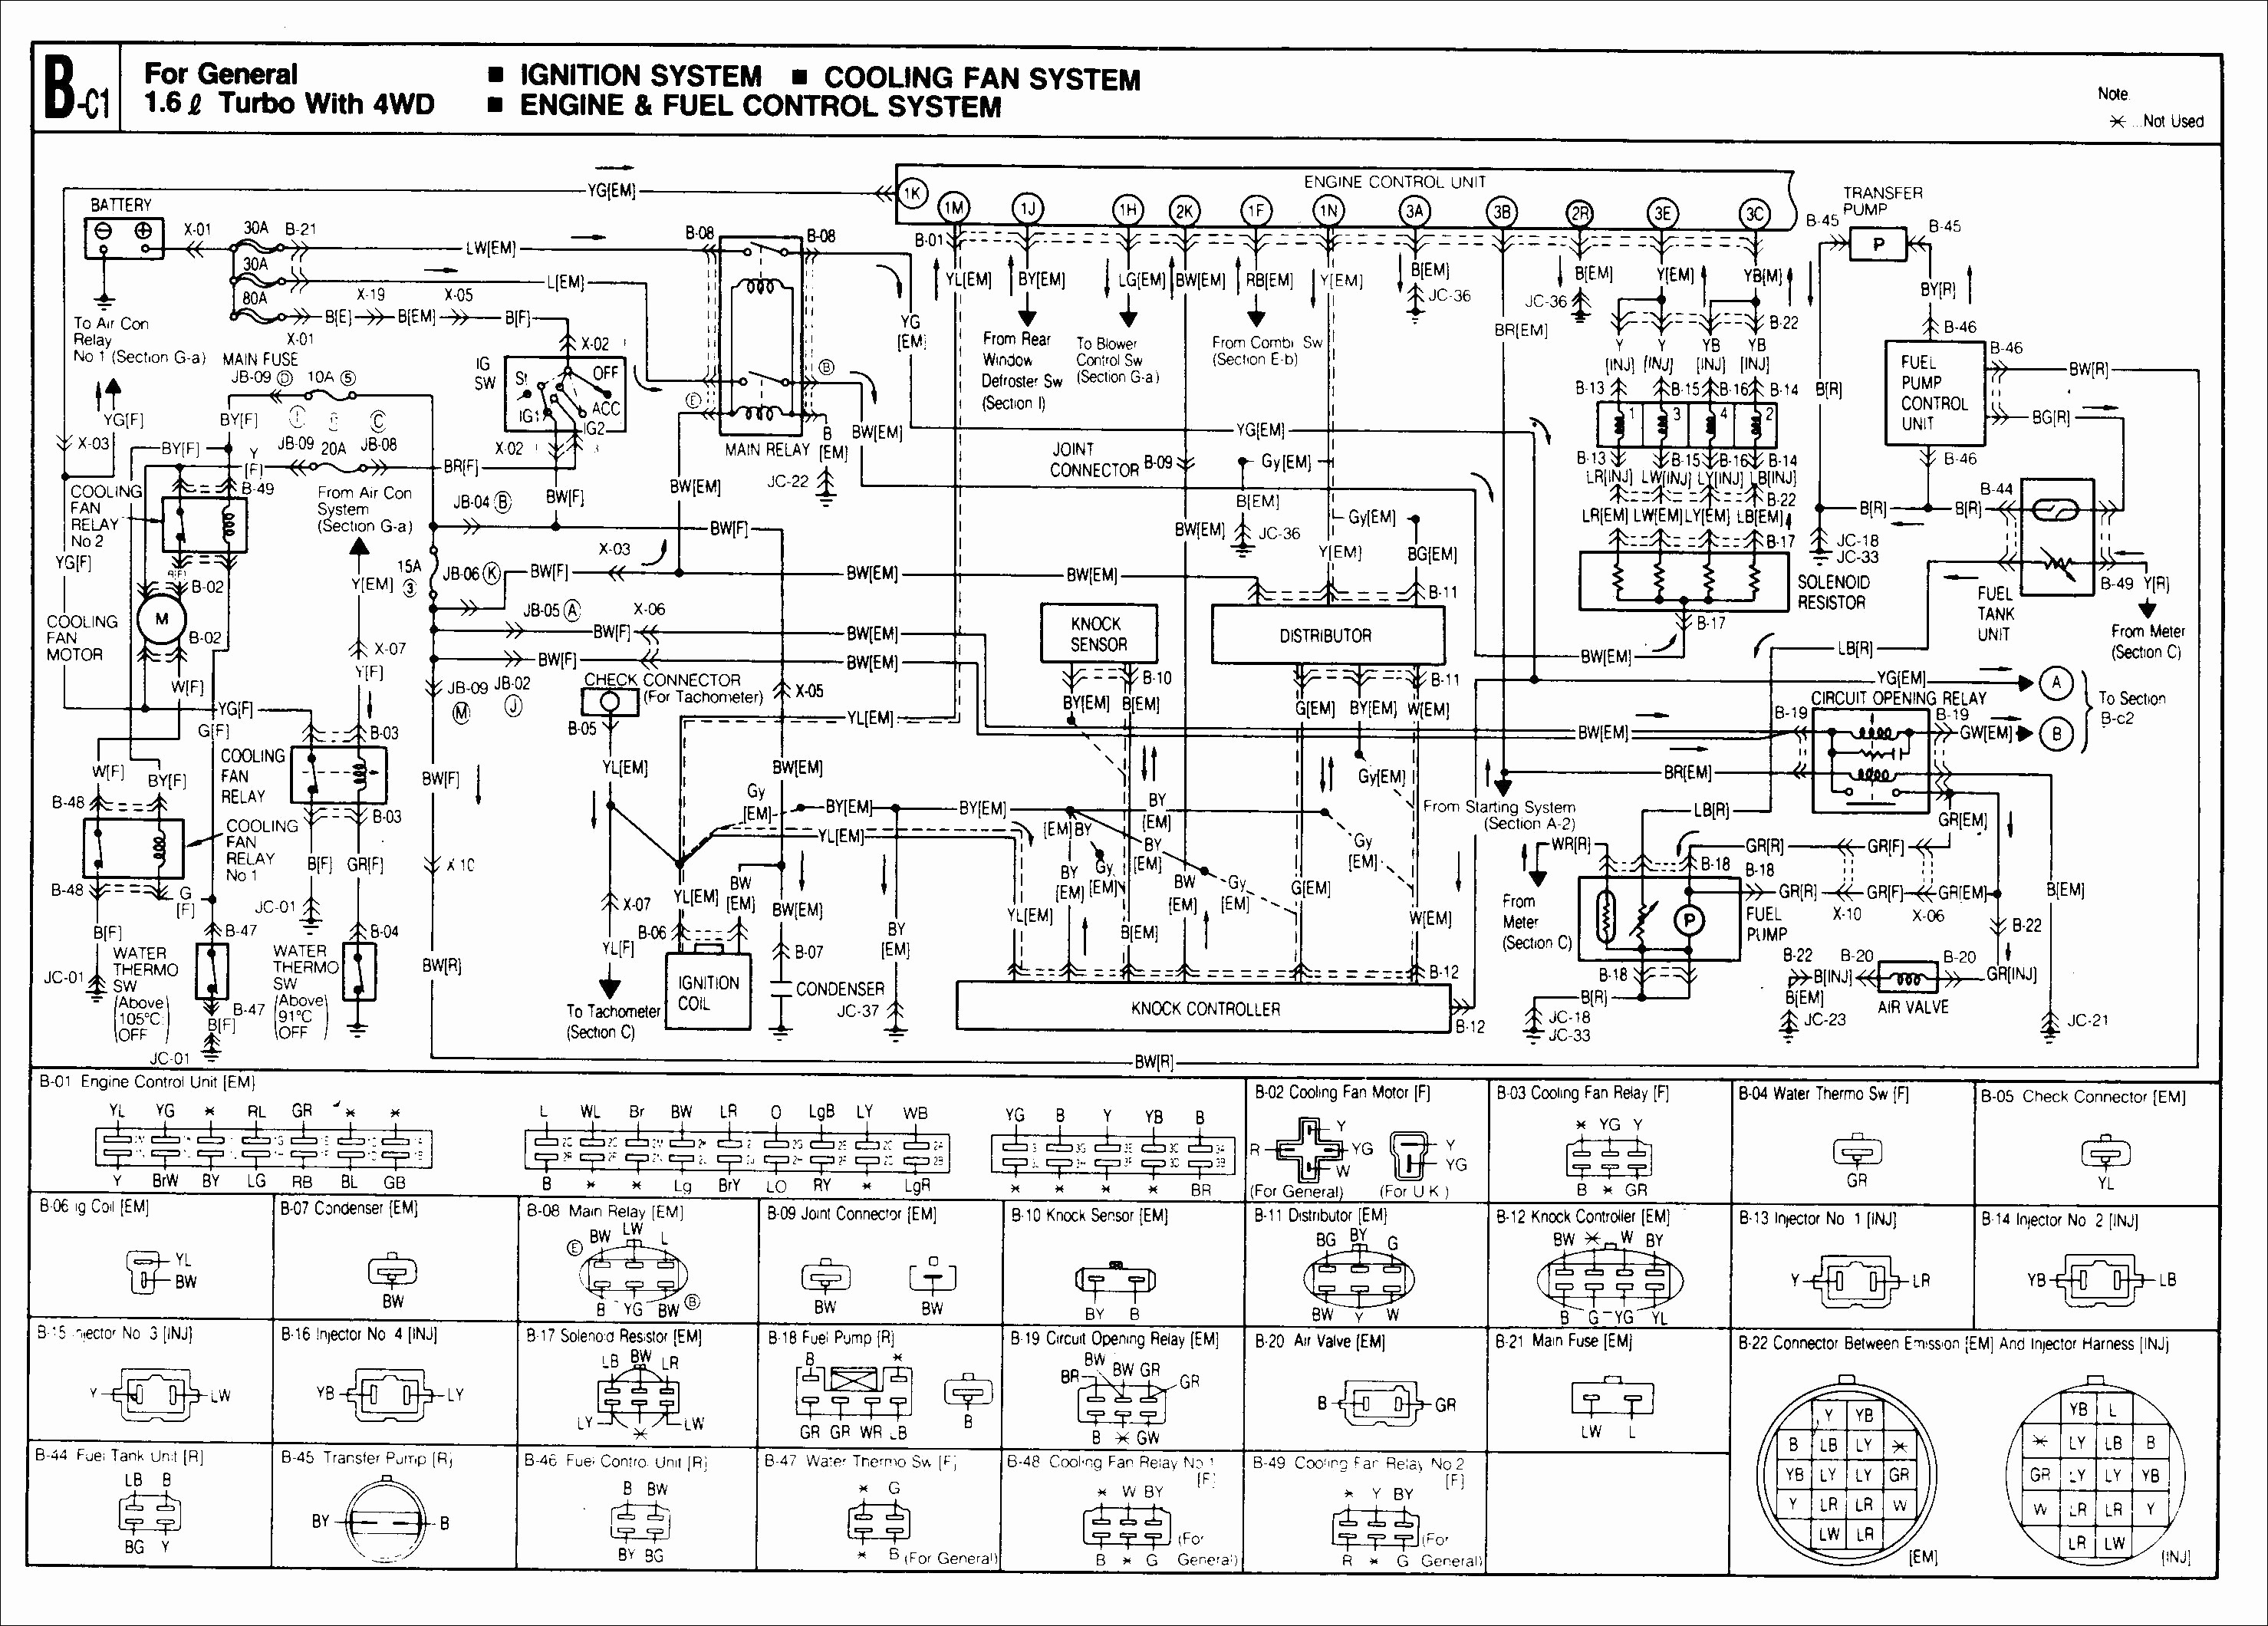 Bluebird Bus Wiring Diagram Elegant Mazda Z5 Wiring Diagram Schematics  Wiring Diagrams • Bluebird Bus